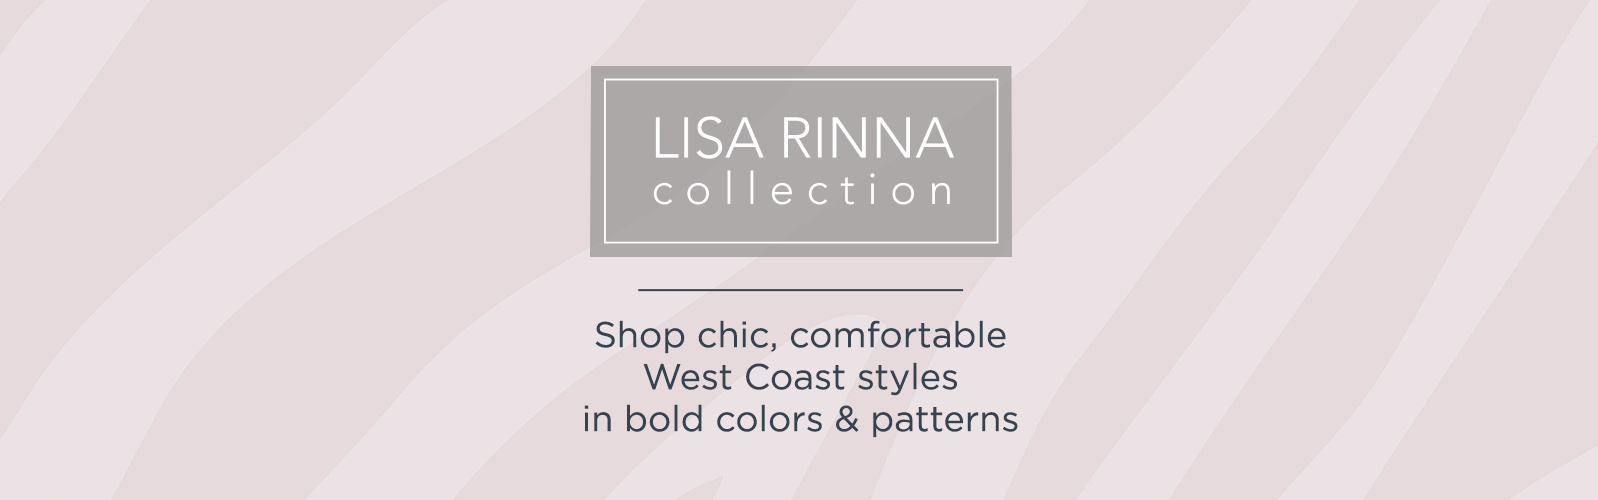 Lisa Rinna Collection, Shop chic, comfortable West Coast styles in bold colors & patterns